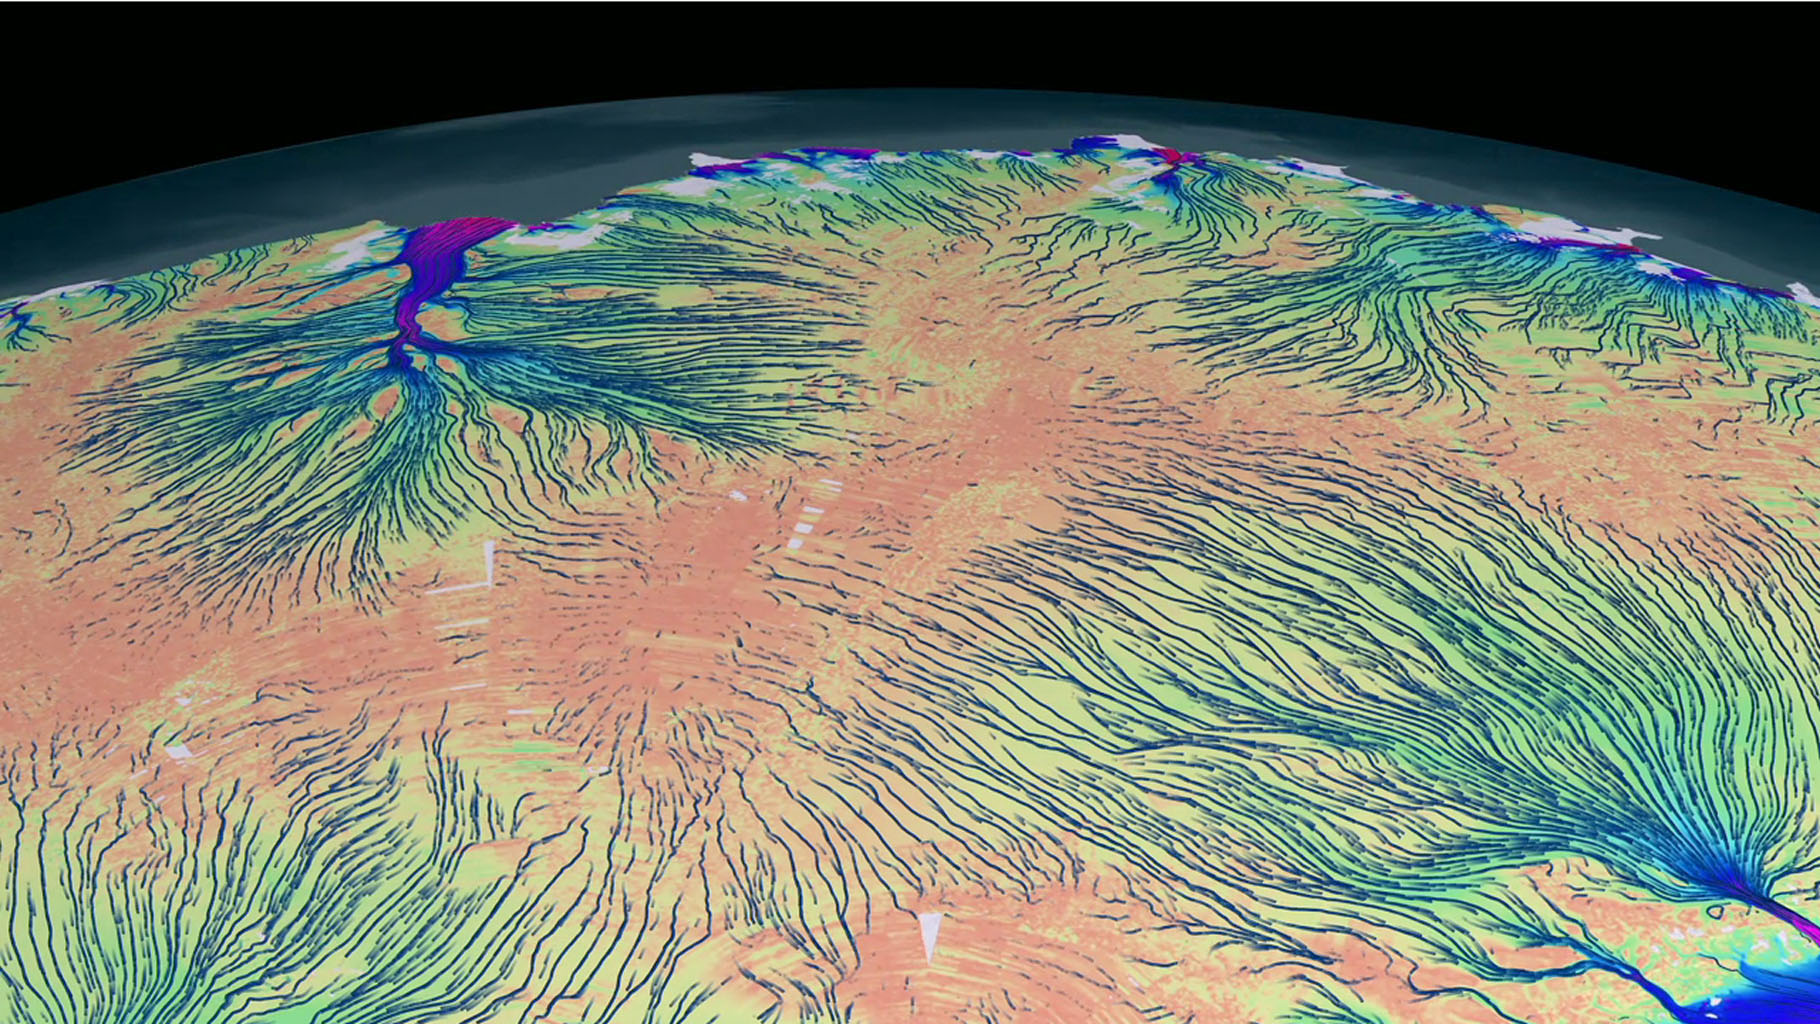 This frame from an animation shows the motion of ice in Antarctica as measured by satellite data from various space agencies. The colors represent the speed of the ice flows in meters per year.